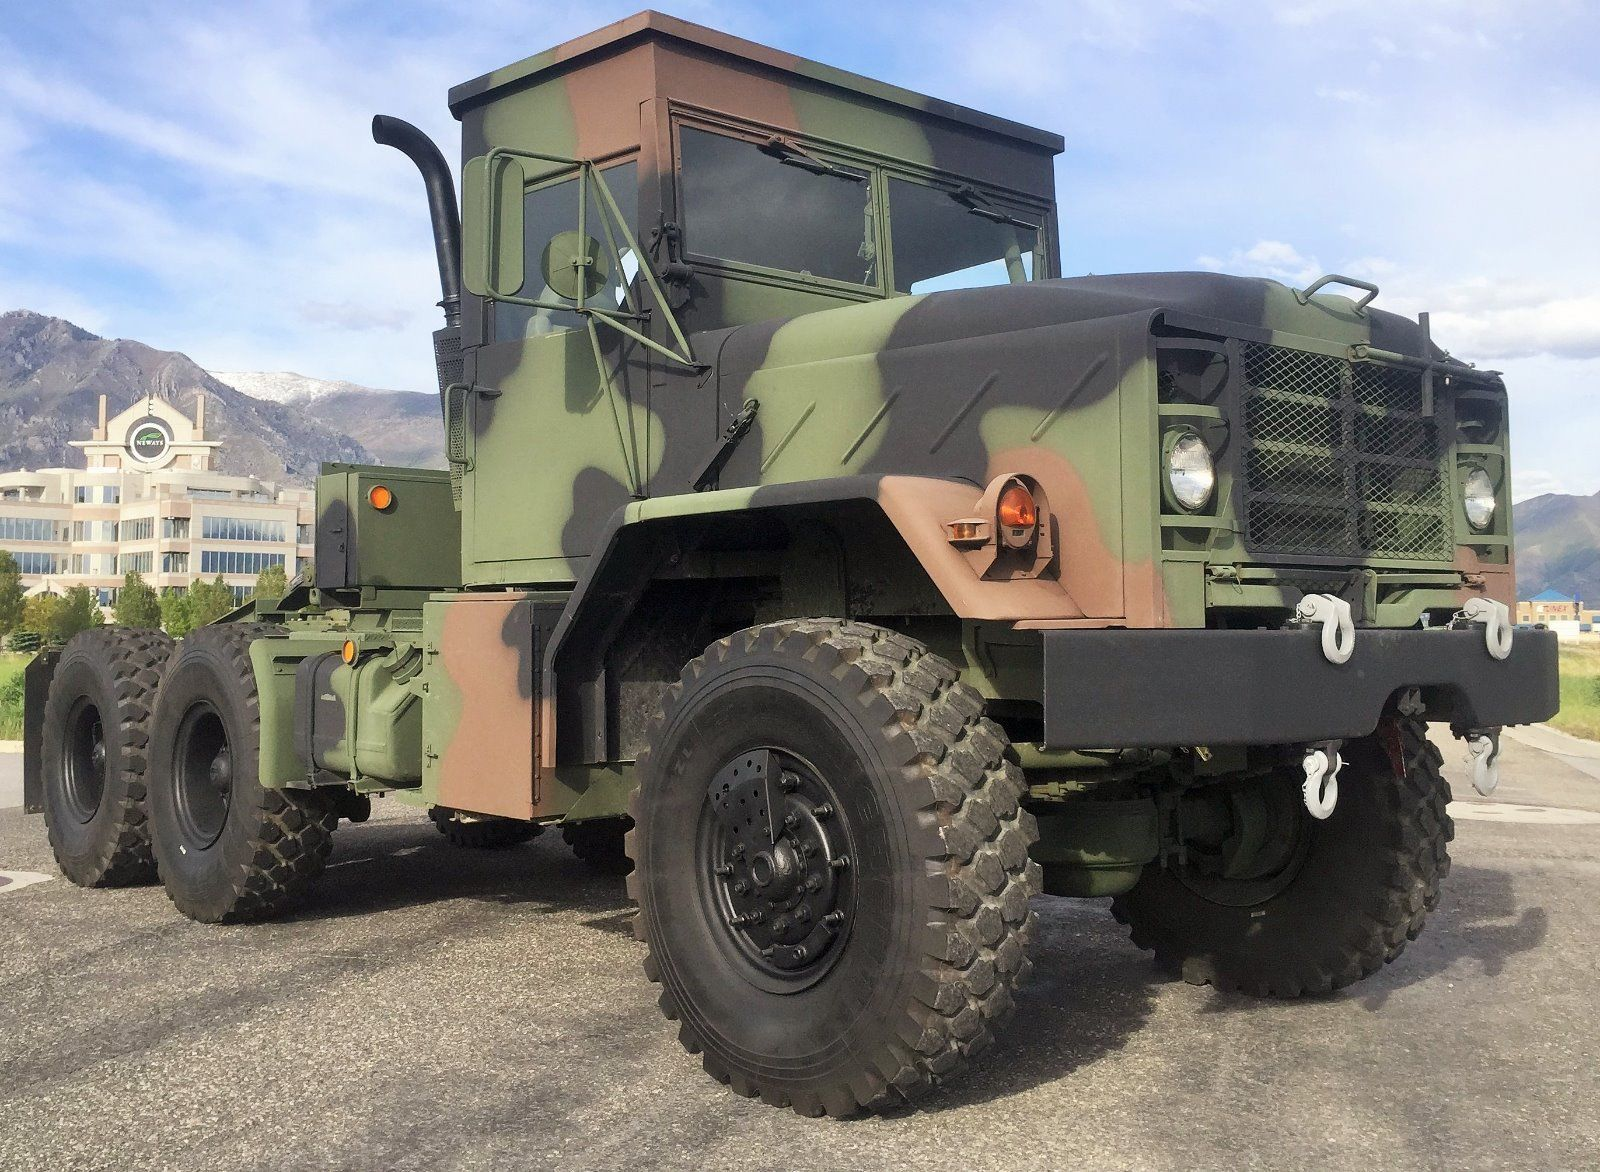 Bmy harsco military wheel truck with roll cage for sale